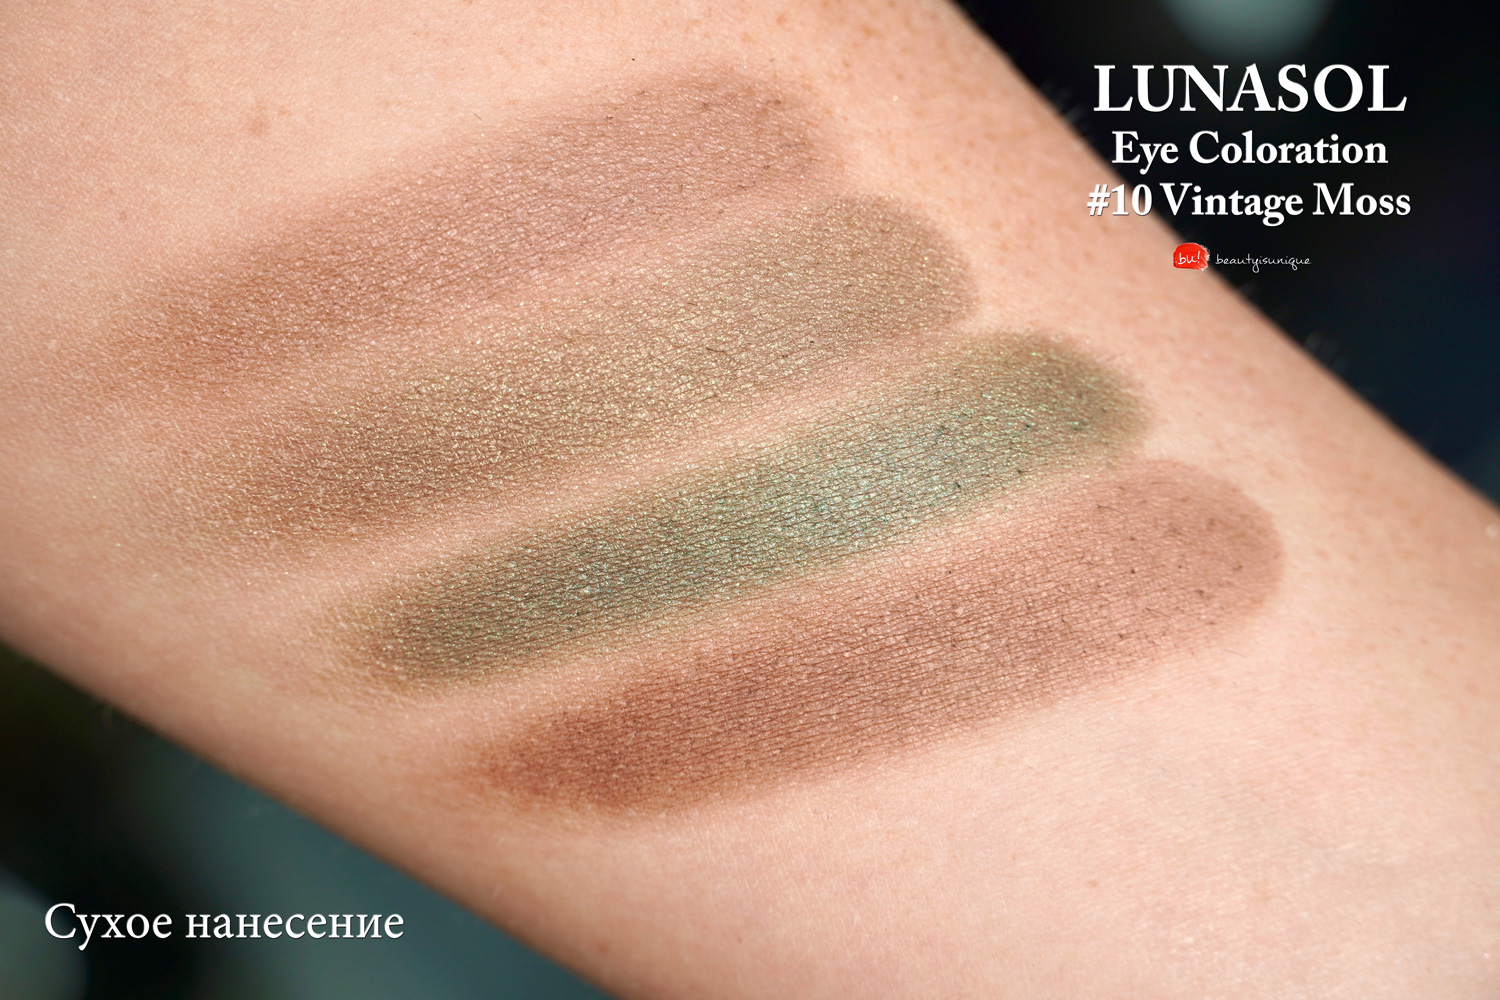 lunasol-10-vintage-moss-eye-coloration